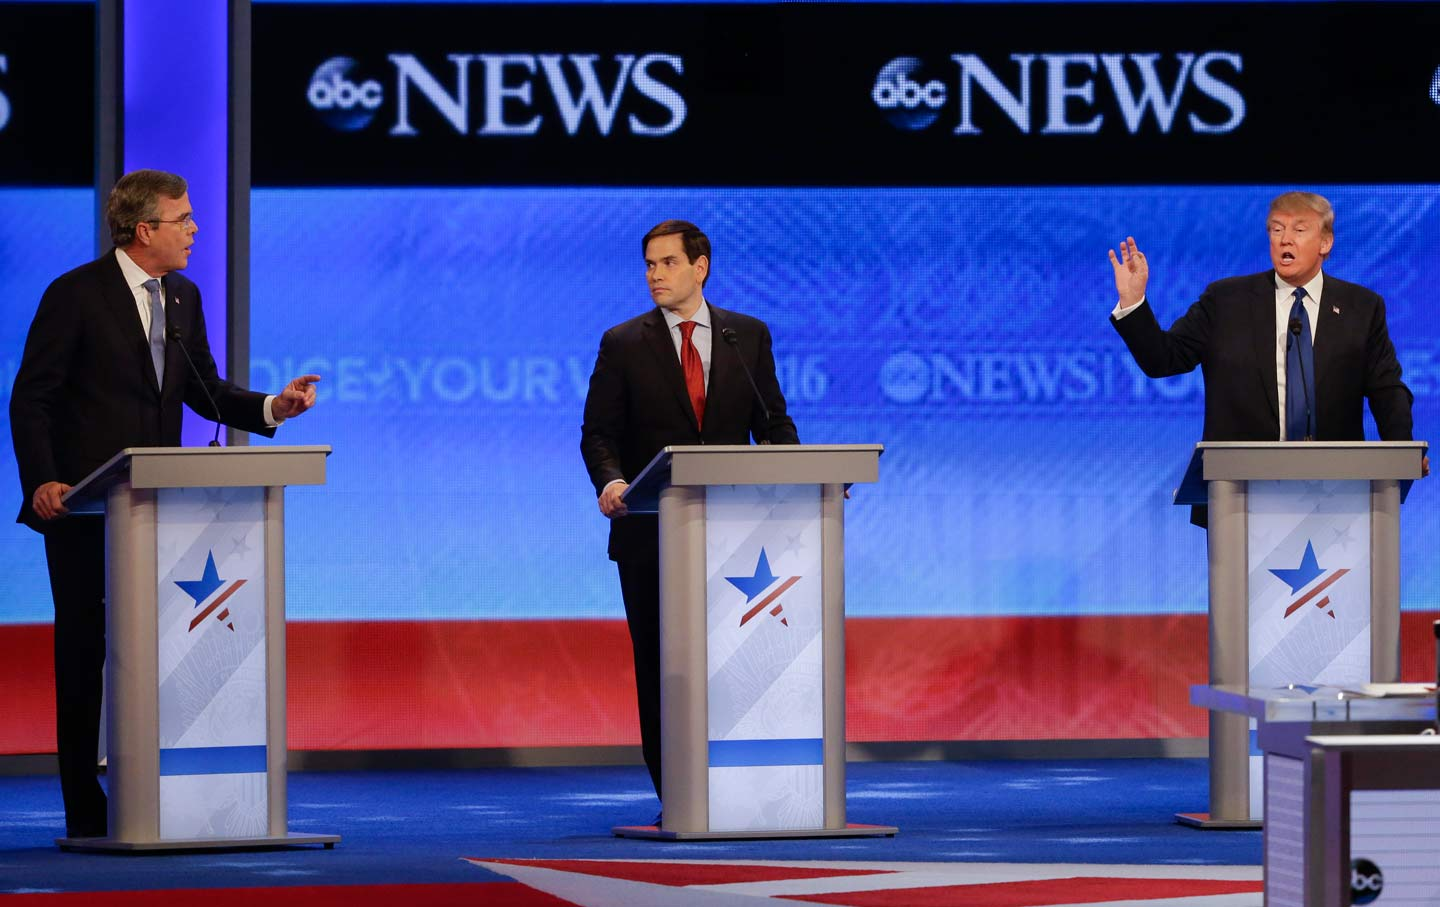 Jeb Bush and Donald Trump spar, as Senator Marco Rubio, R-FL, listens in the middle, during the Republican presidential primary debate at the St. Anselm College Saturday, February 6, 2016, in Manchester, New Hampshire. (AP Photo / David Goldman)